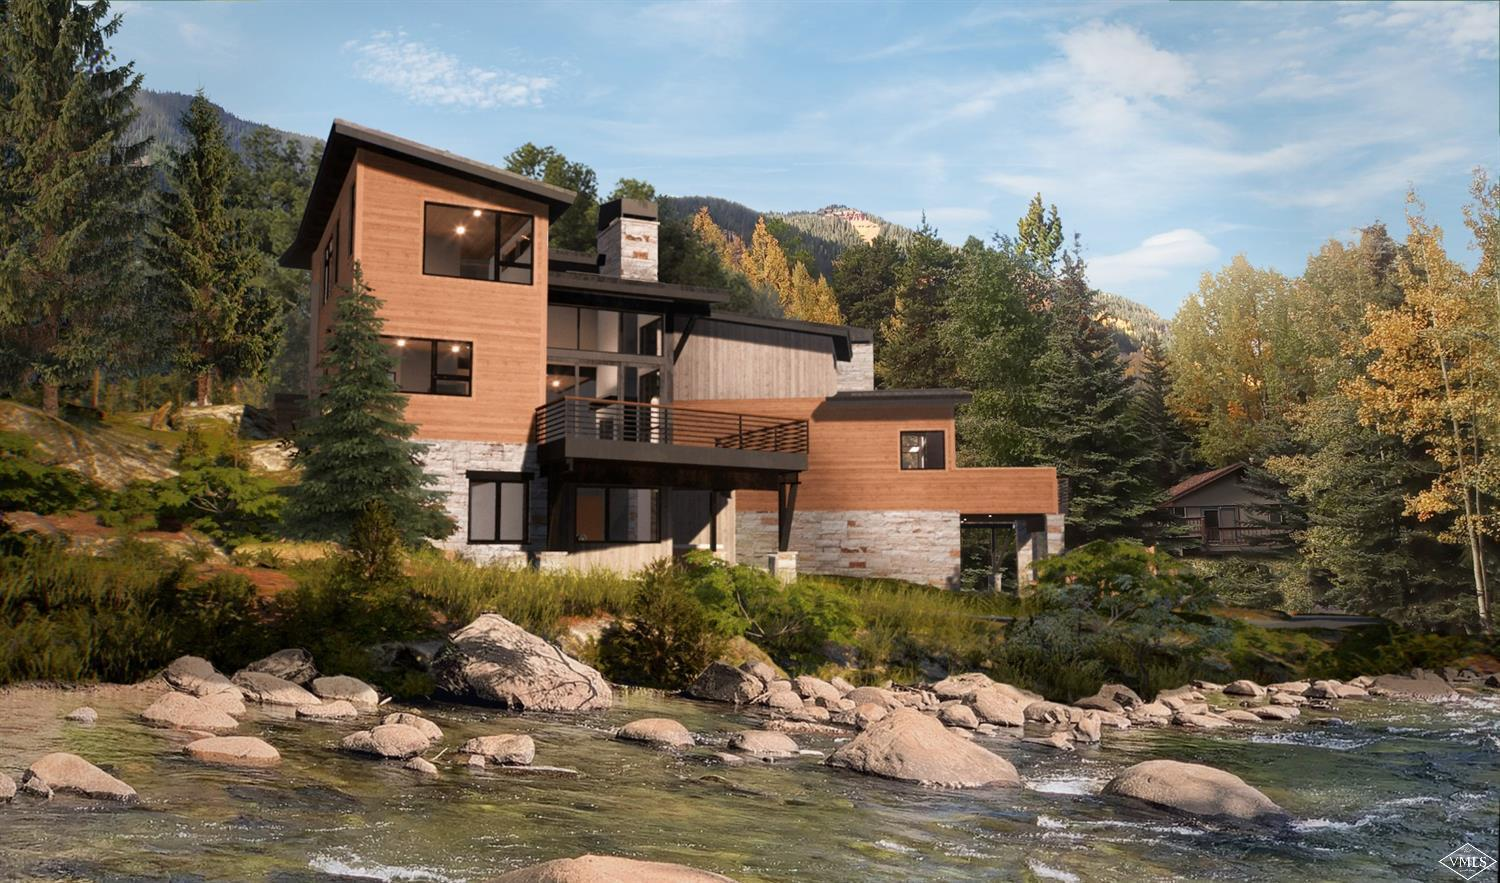 Creekside new construction in East Vail to be completed in October 2020! Enjoy the sounds of Gore Creek while taking in the views of Bald Mountain from this mountain modern half-duplex currently under construction.